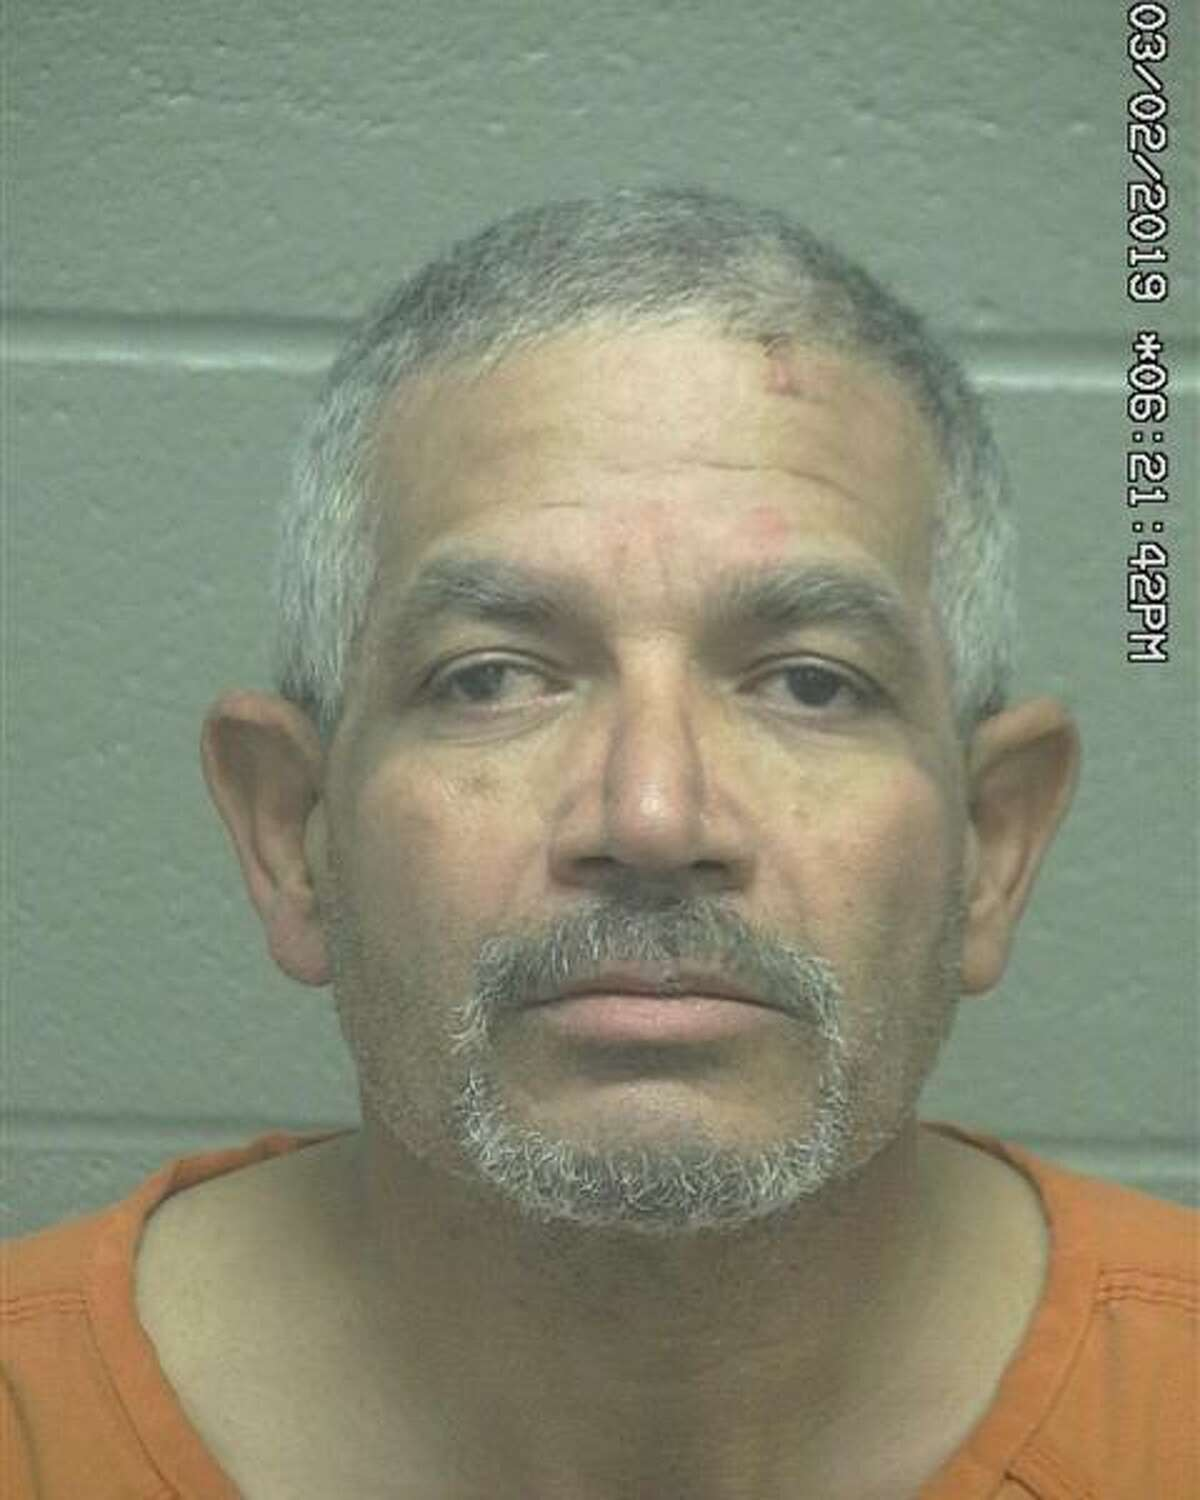 Donald Twa,61, was arrested Feb. 2 for allegedly threatening to shoot a woman, according to court documents. READ MORE:Man arrested for alleged terrorist threat